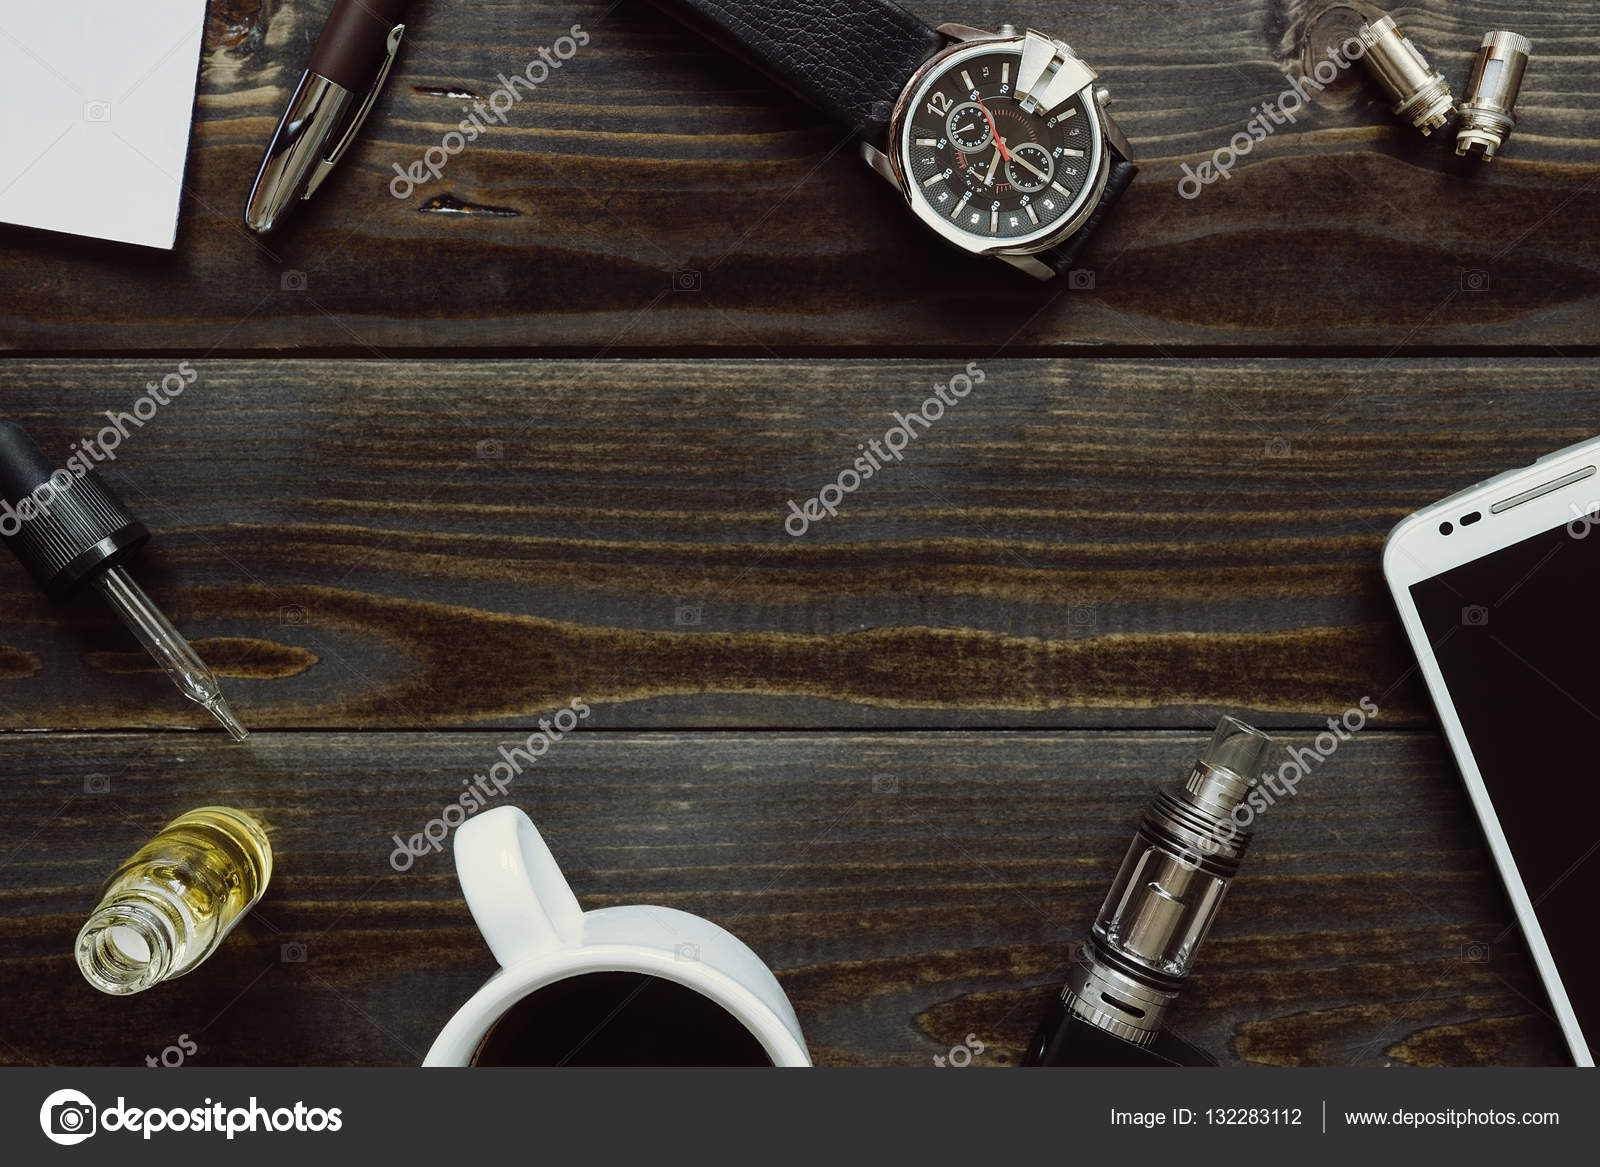 Vaping Set Watch Smartphone And Coffee On The Dark Table Hipster Or Bussinesman Style Trendy Objects With Copy Space Wooden Background Photo By